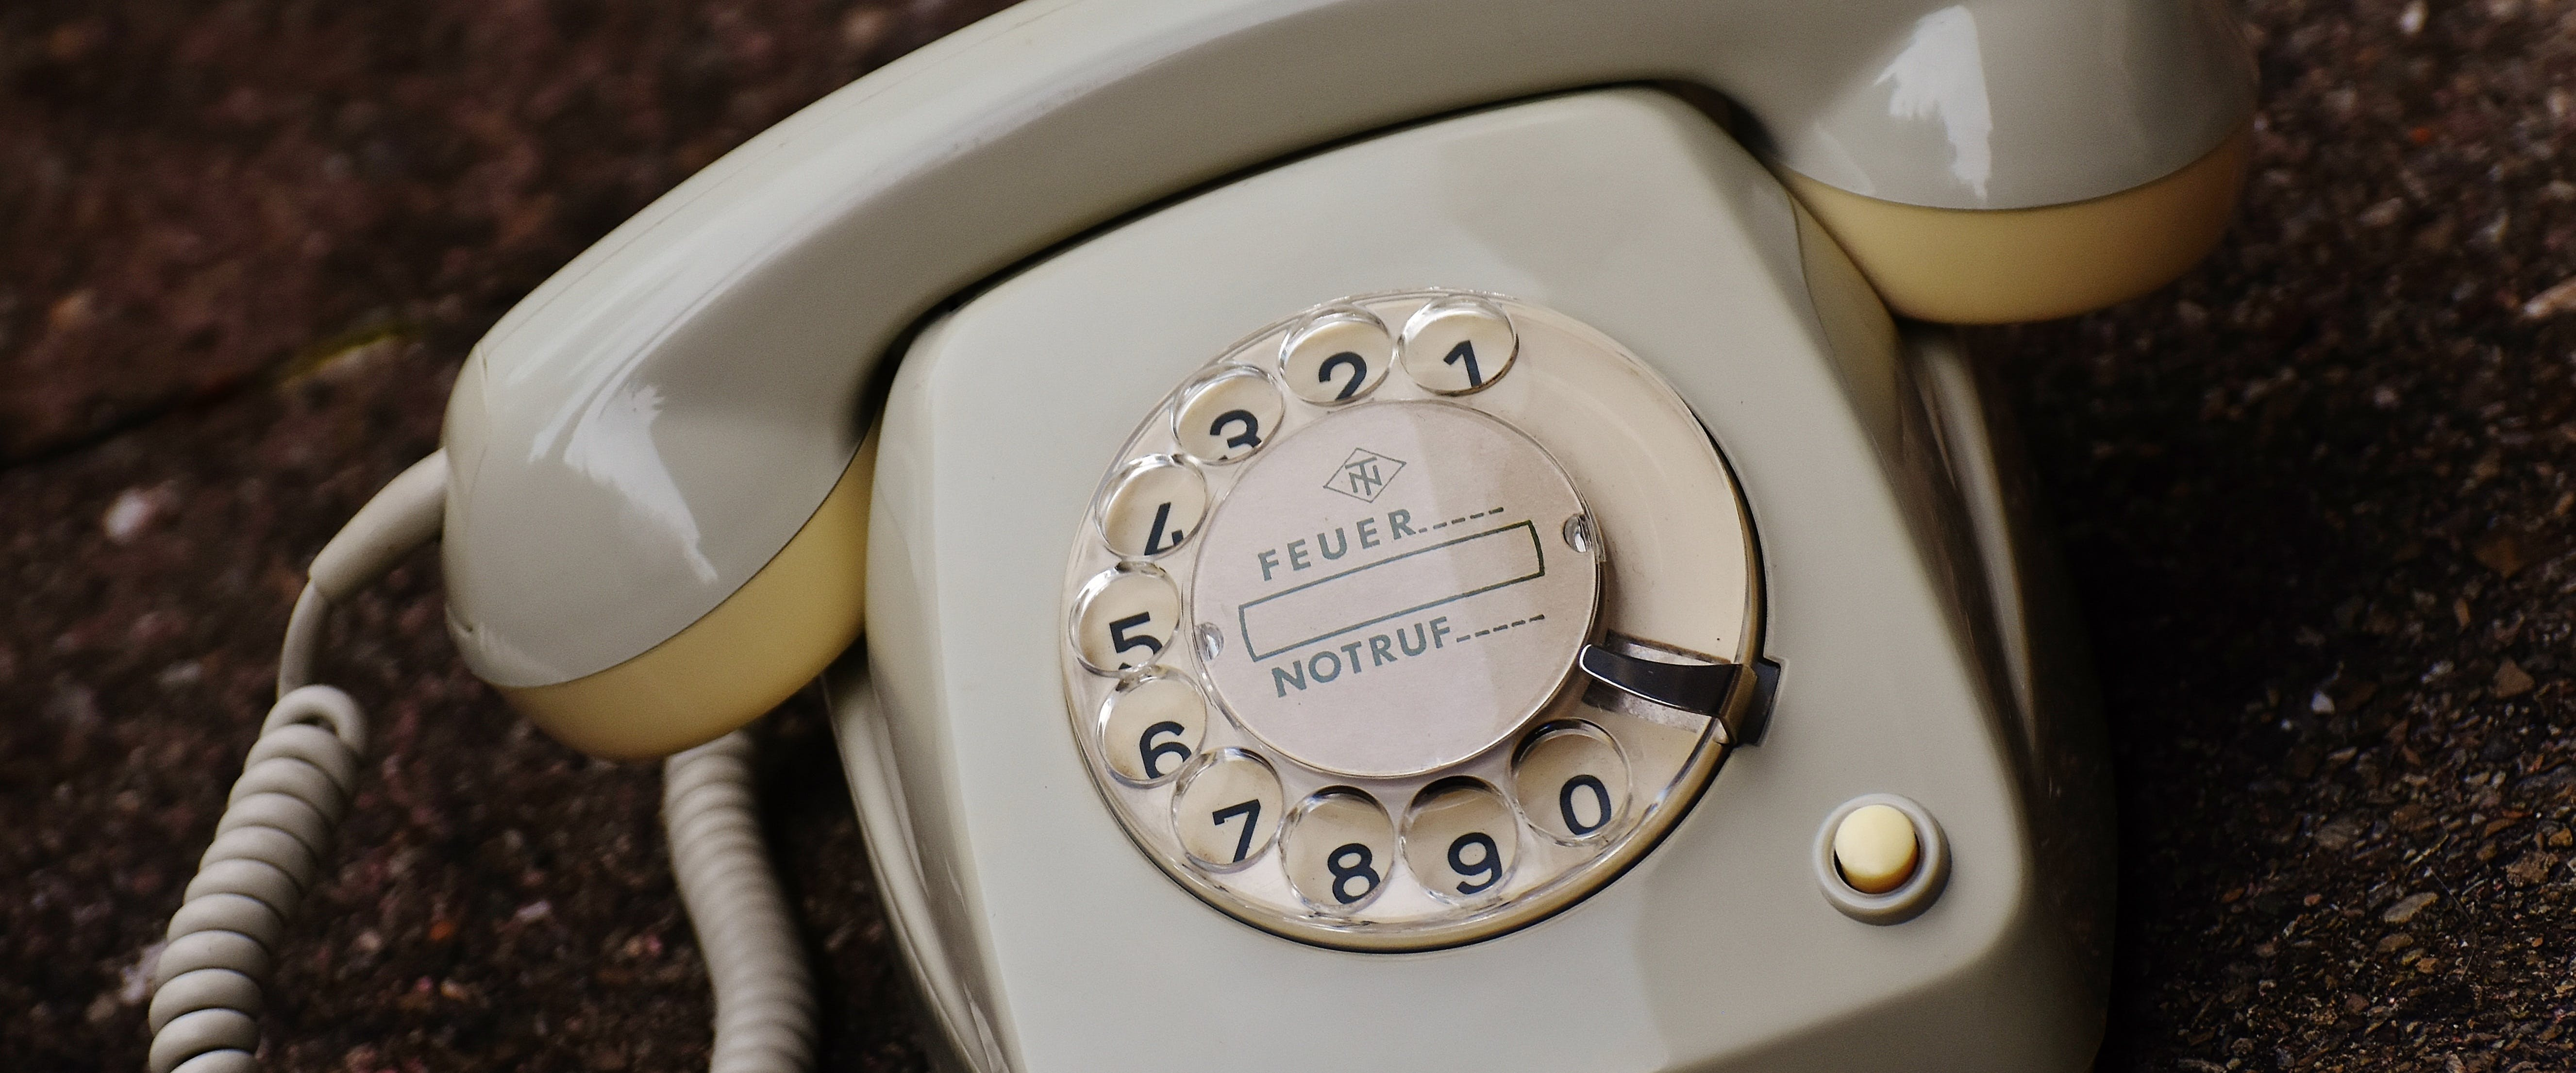 Free stock photo of vintage, classic, telephone, close-up